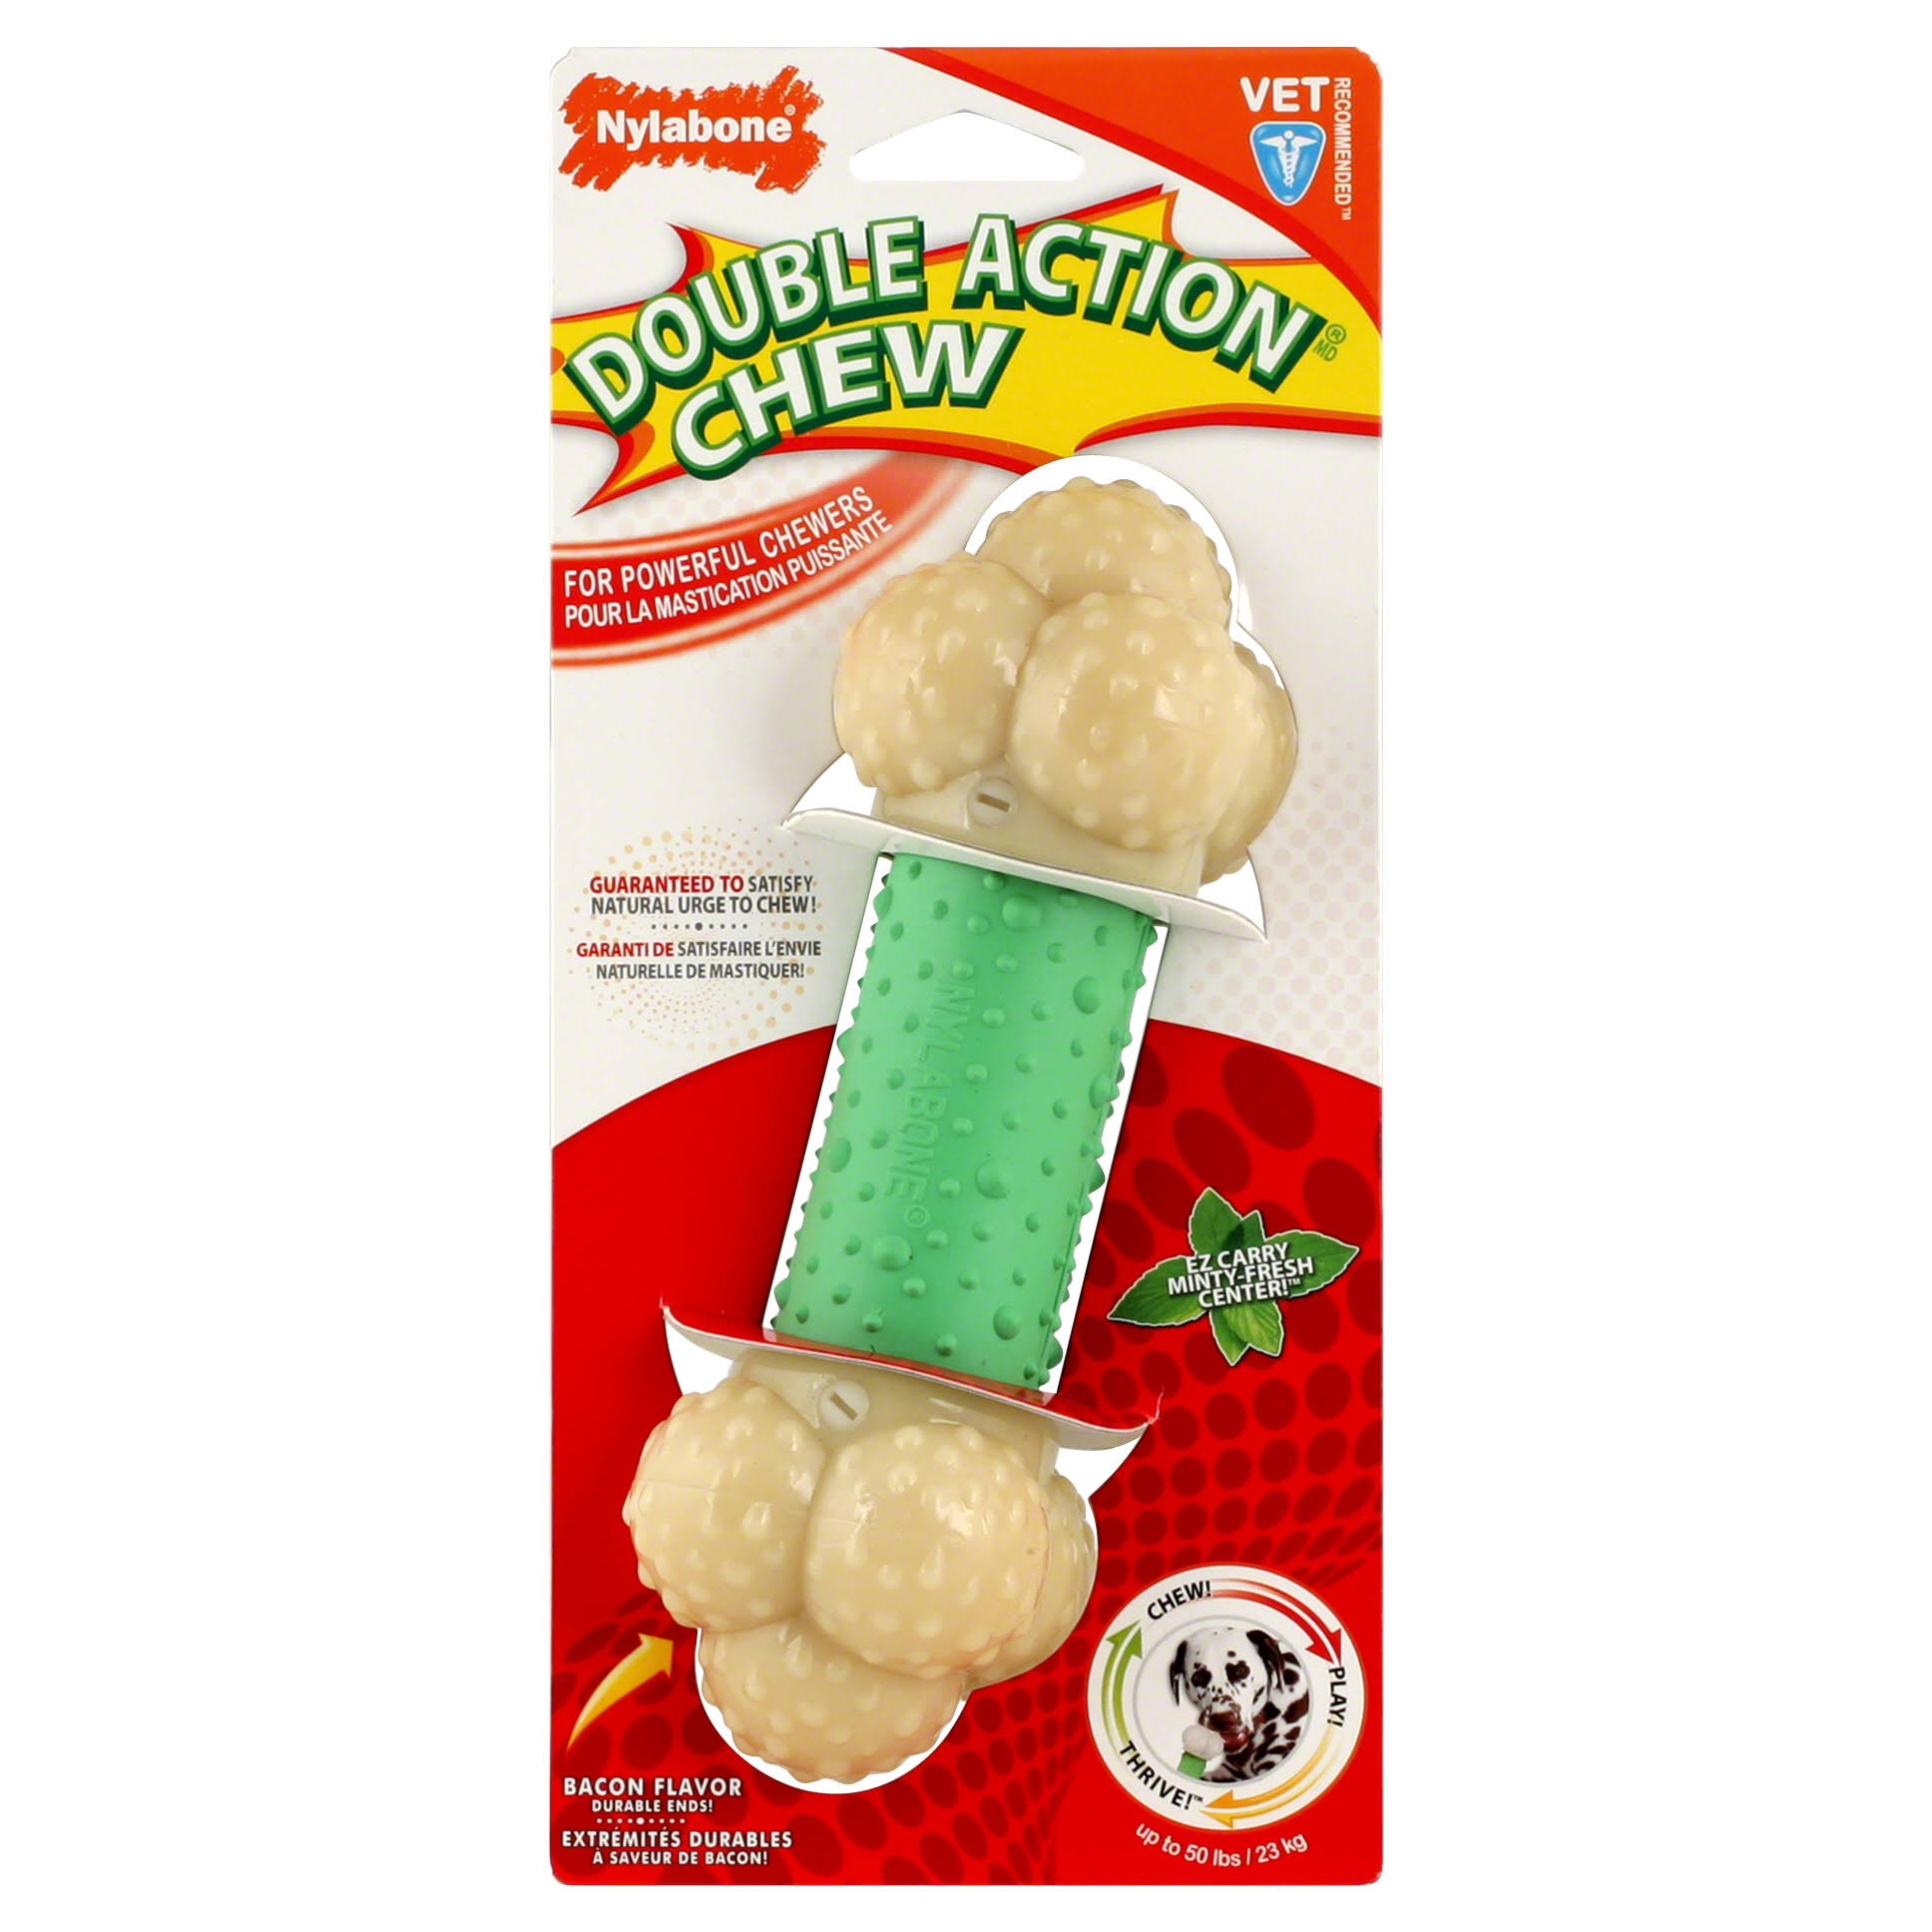 Nylabone Dura Chew Dog Chew Toy - Bacon